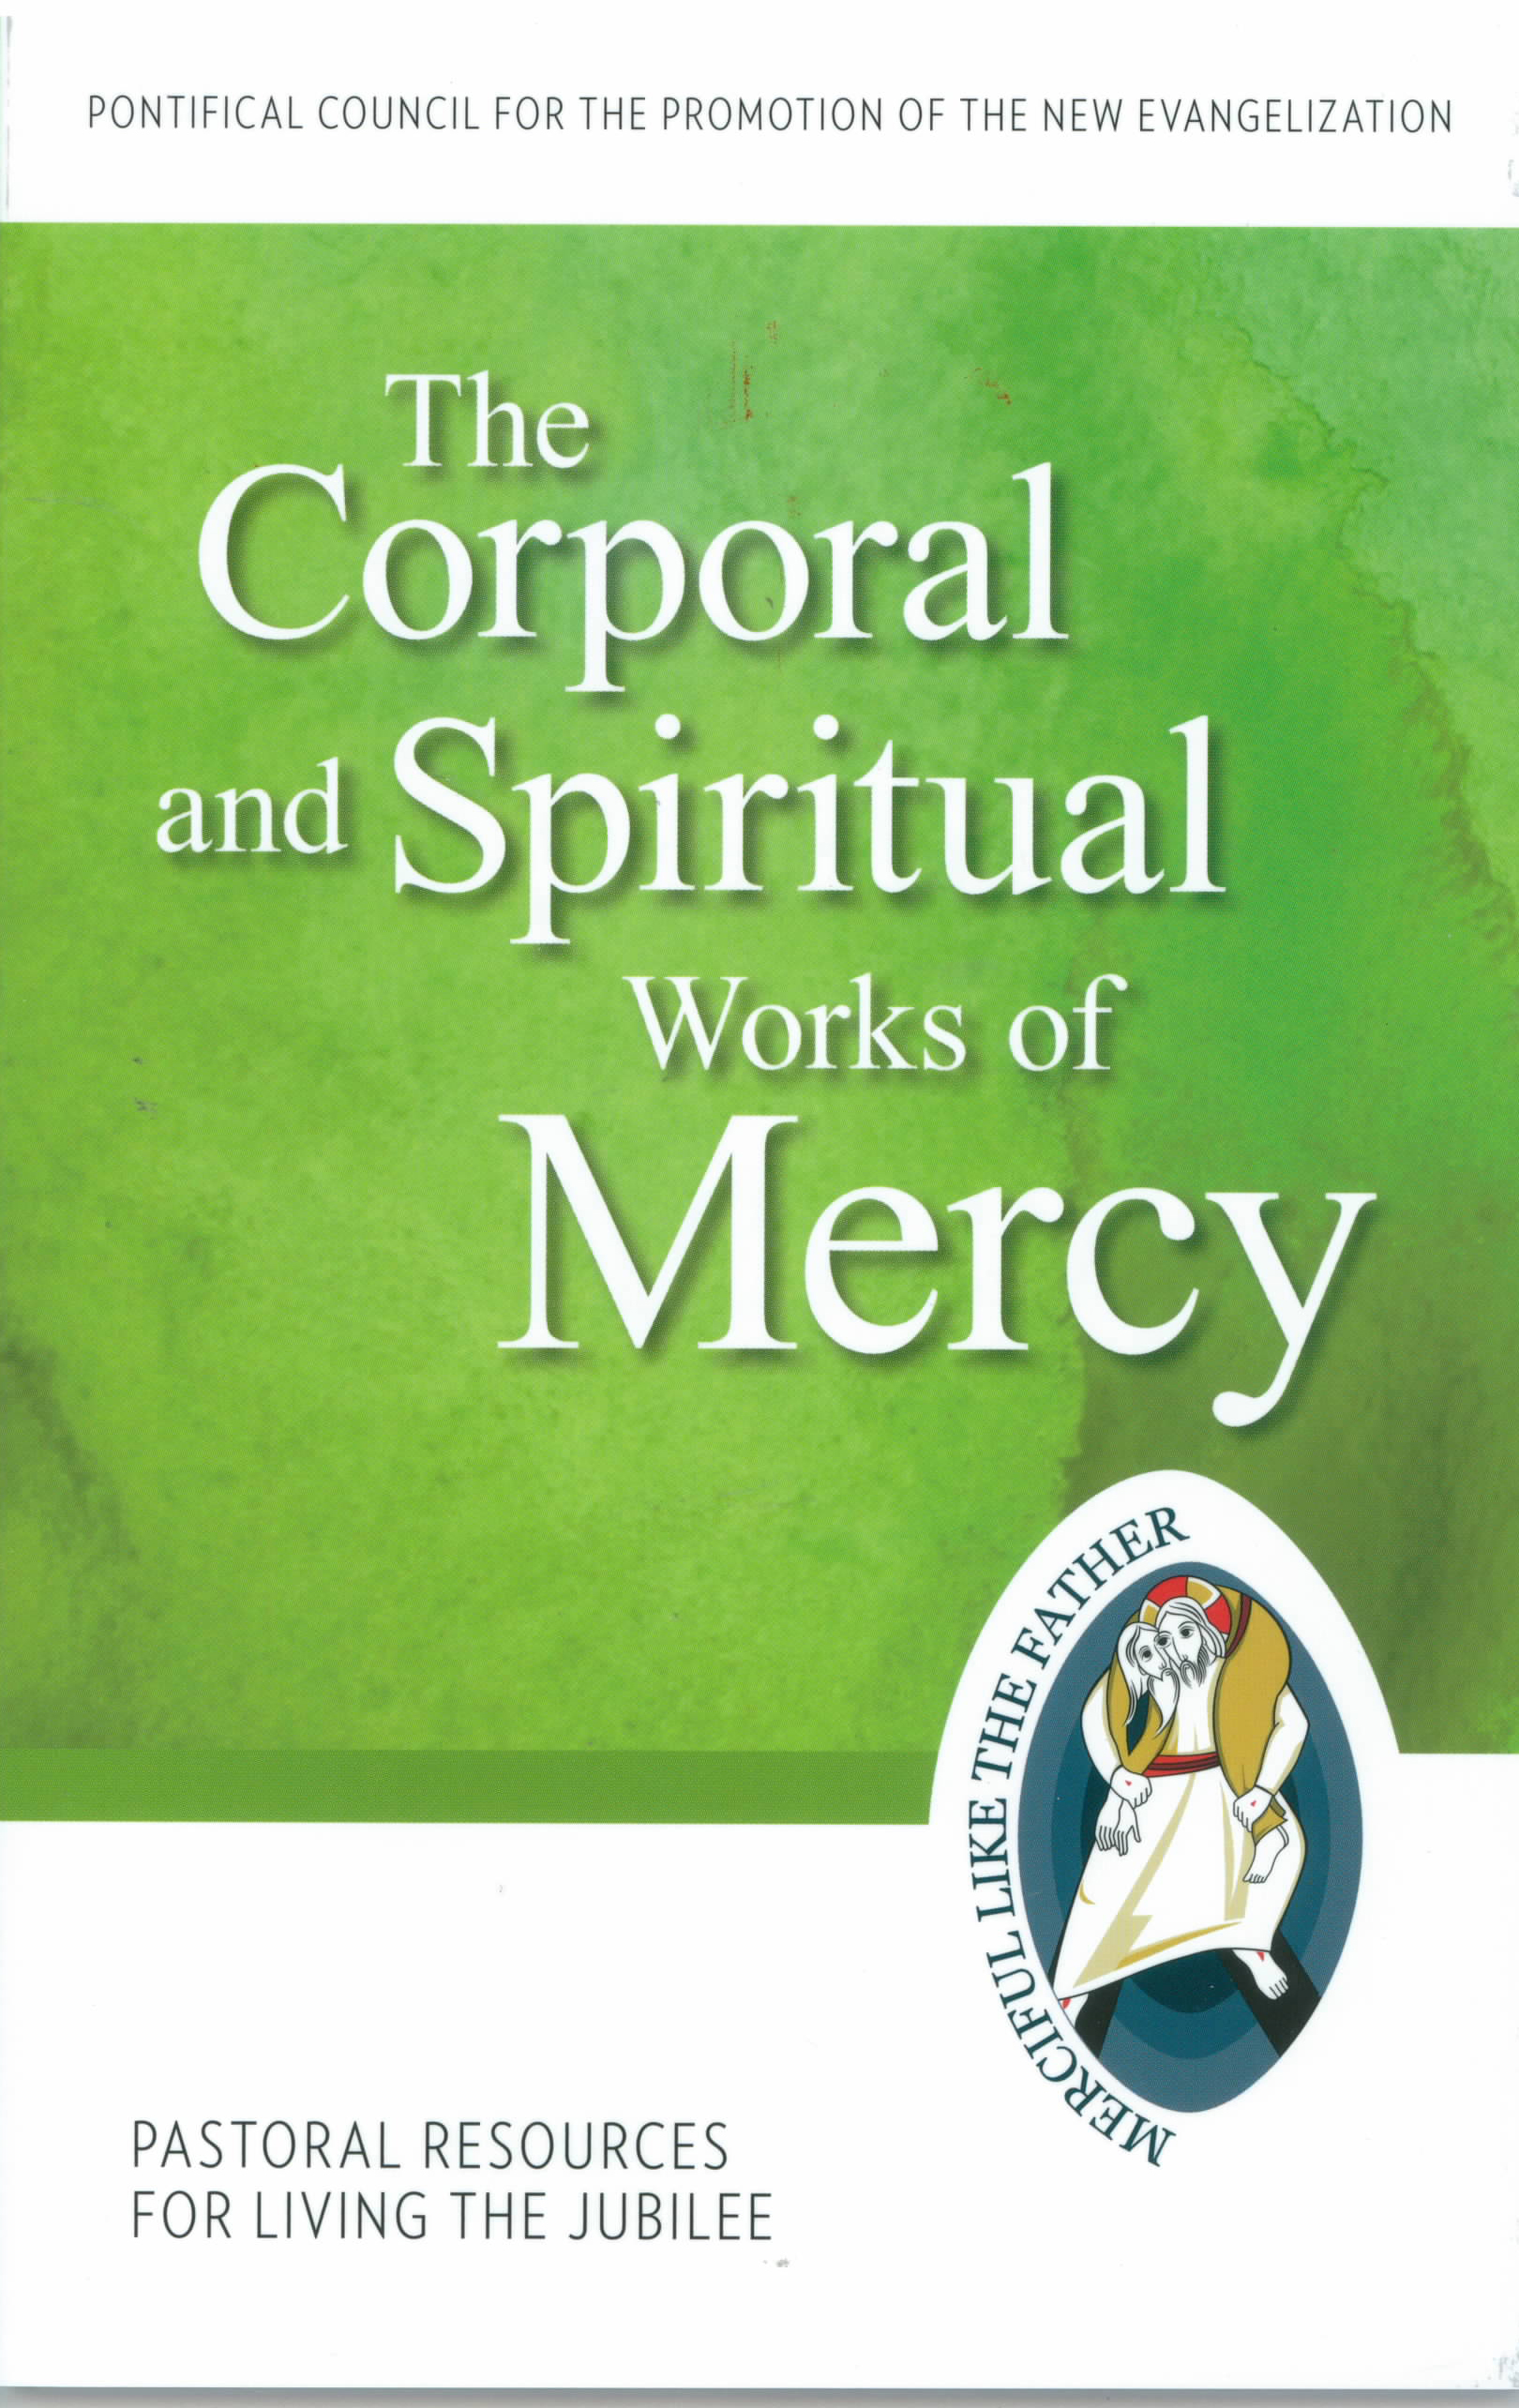 The Corporal and Spiritual Works of Mercy 9781612789811 Pontifical Council for the Promotion of the New Evangelization